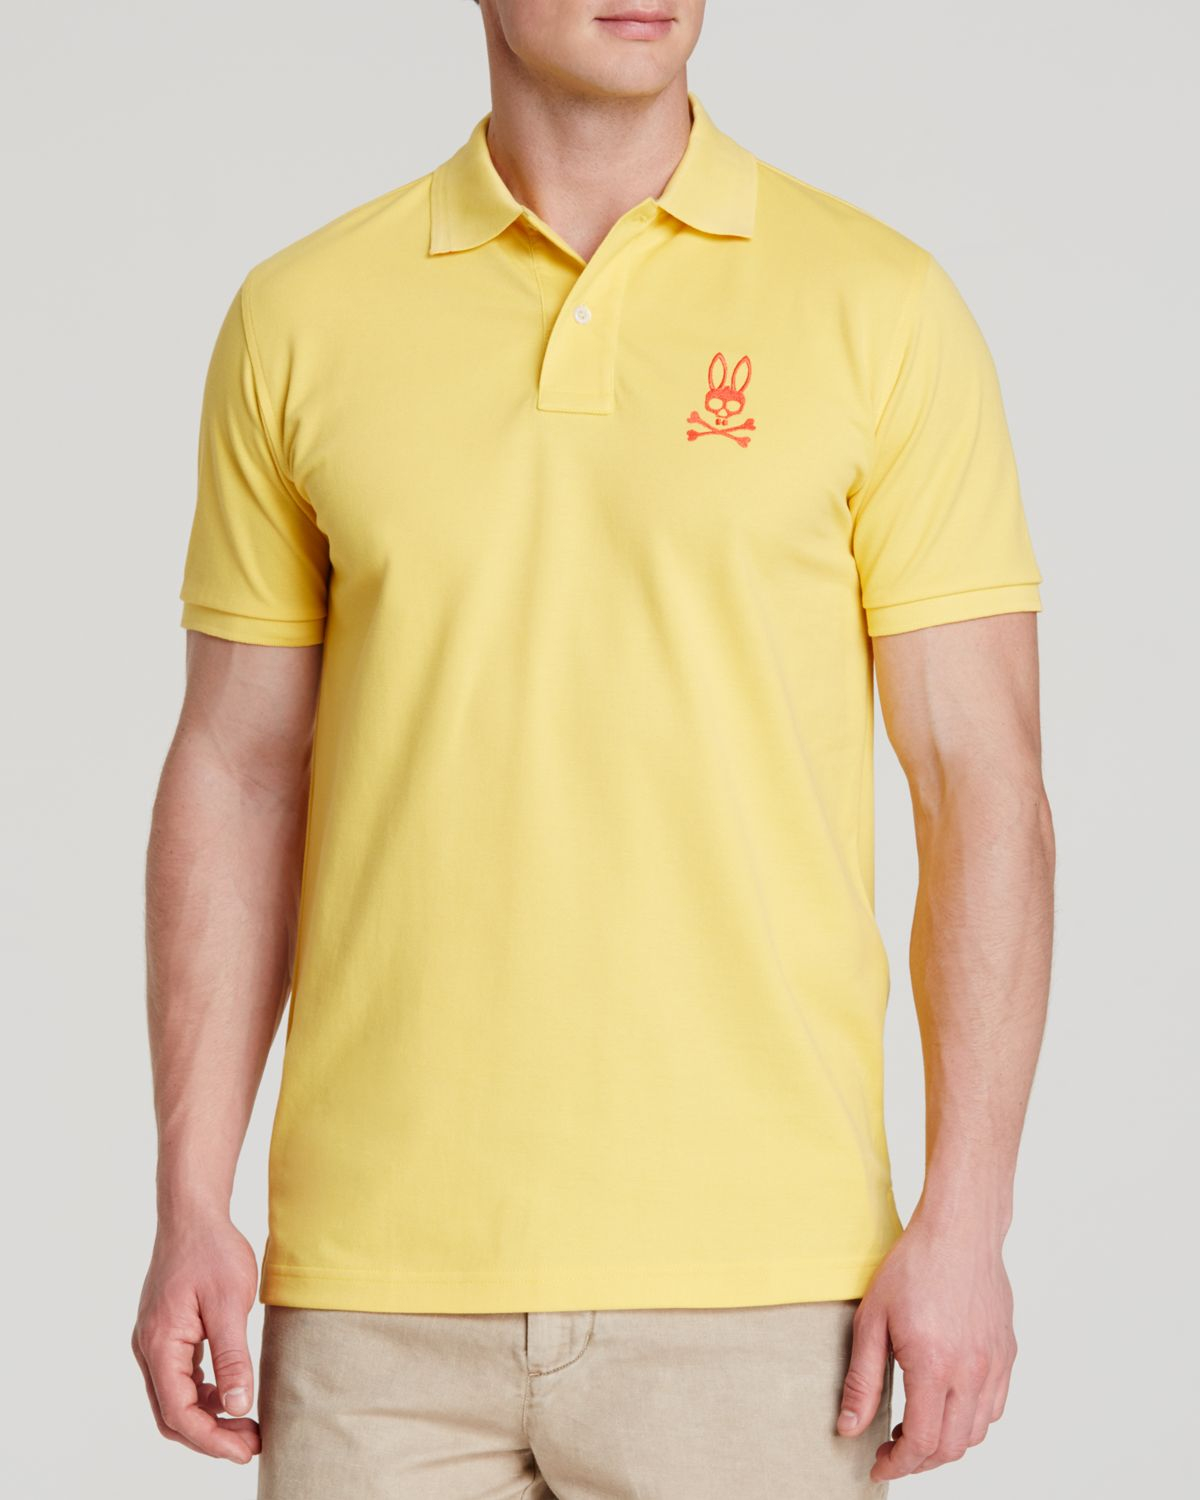 861c61c3 Psycho Bunny Tall Bunny Polo - Regular Fit in Yellow for Men - Lyst